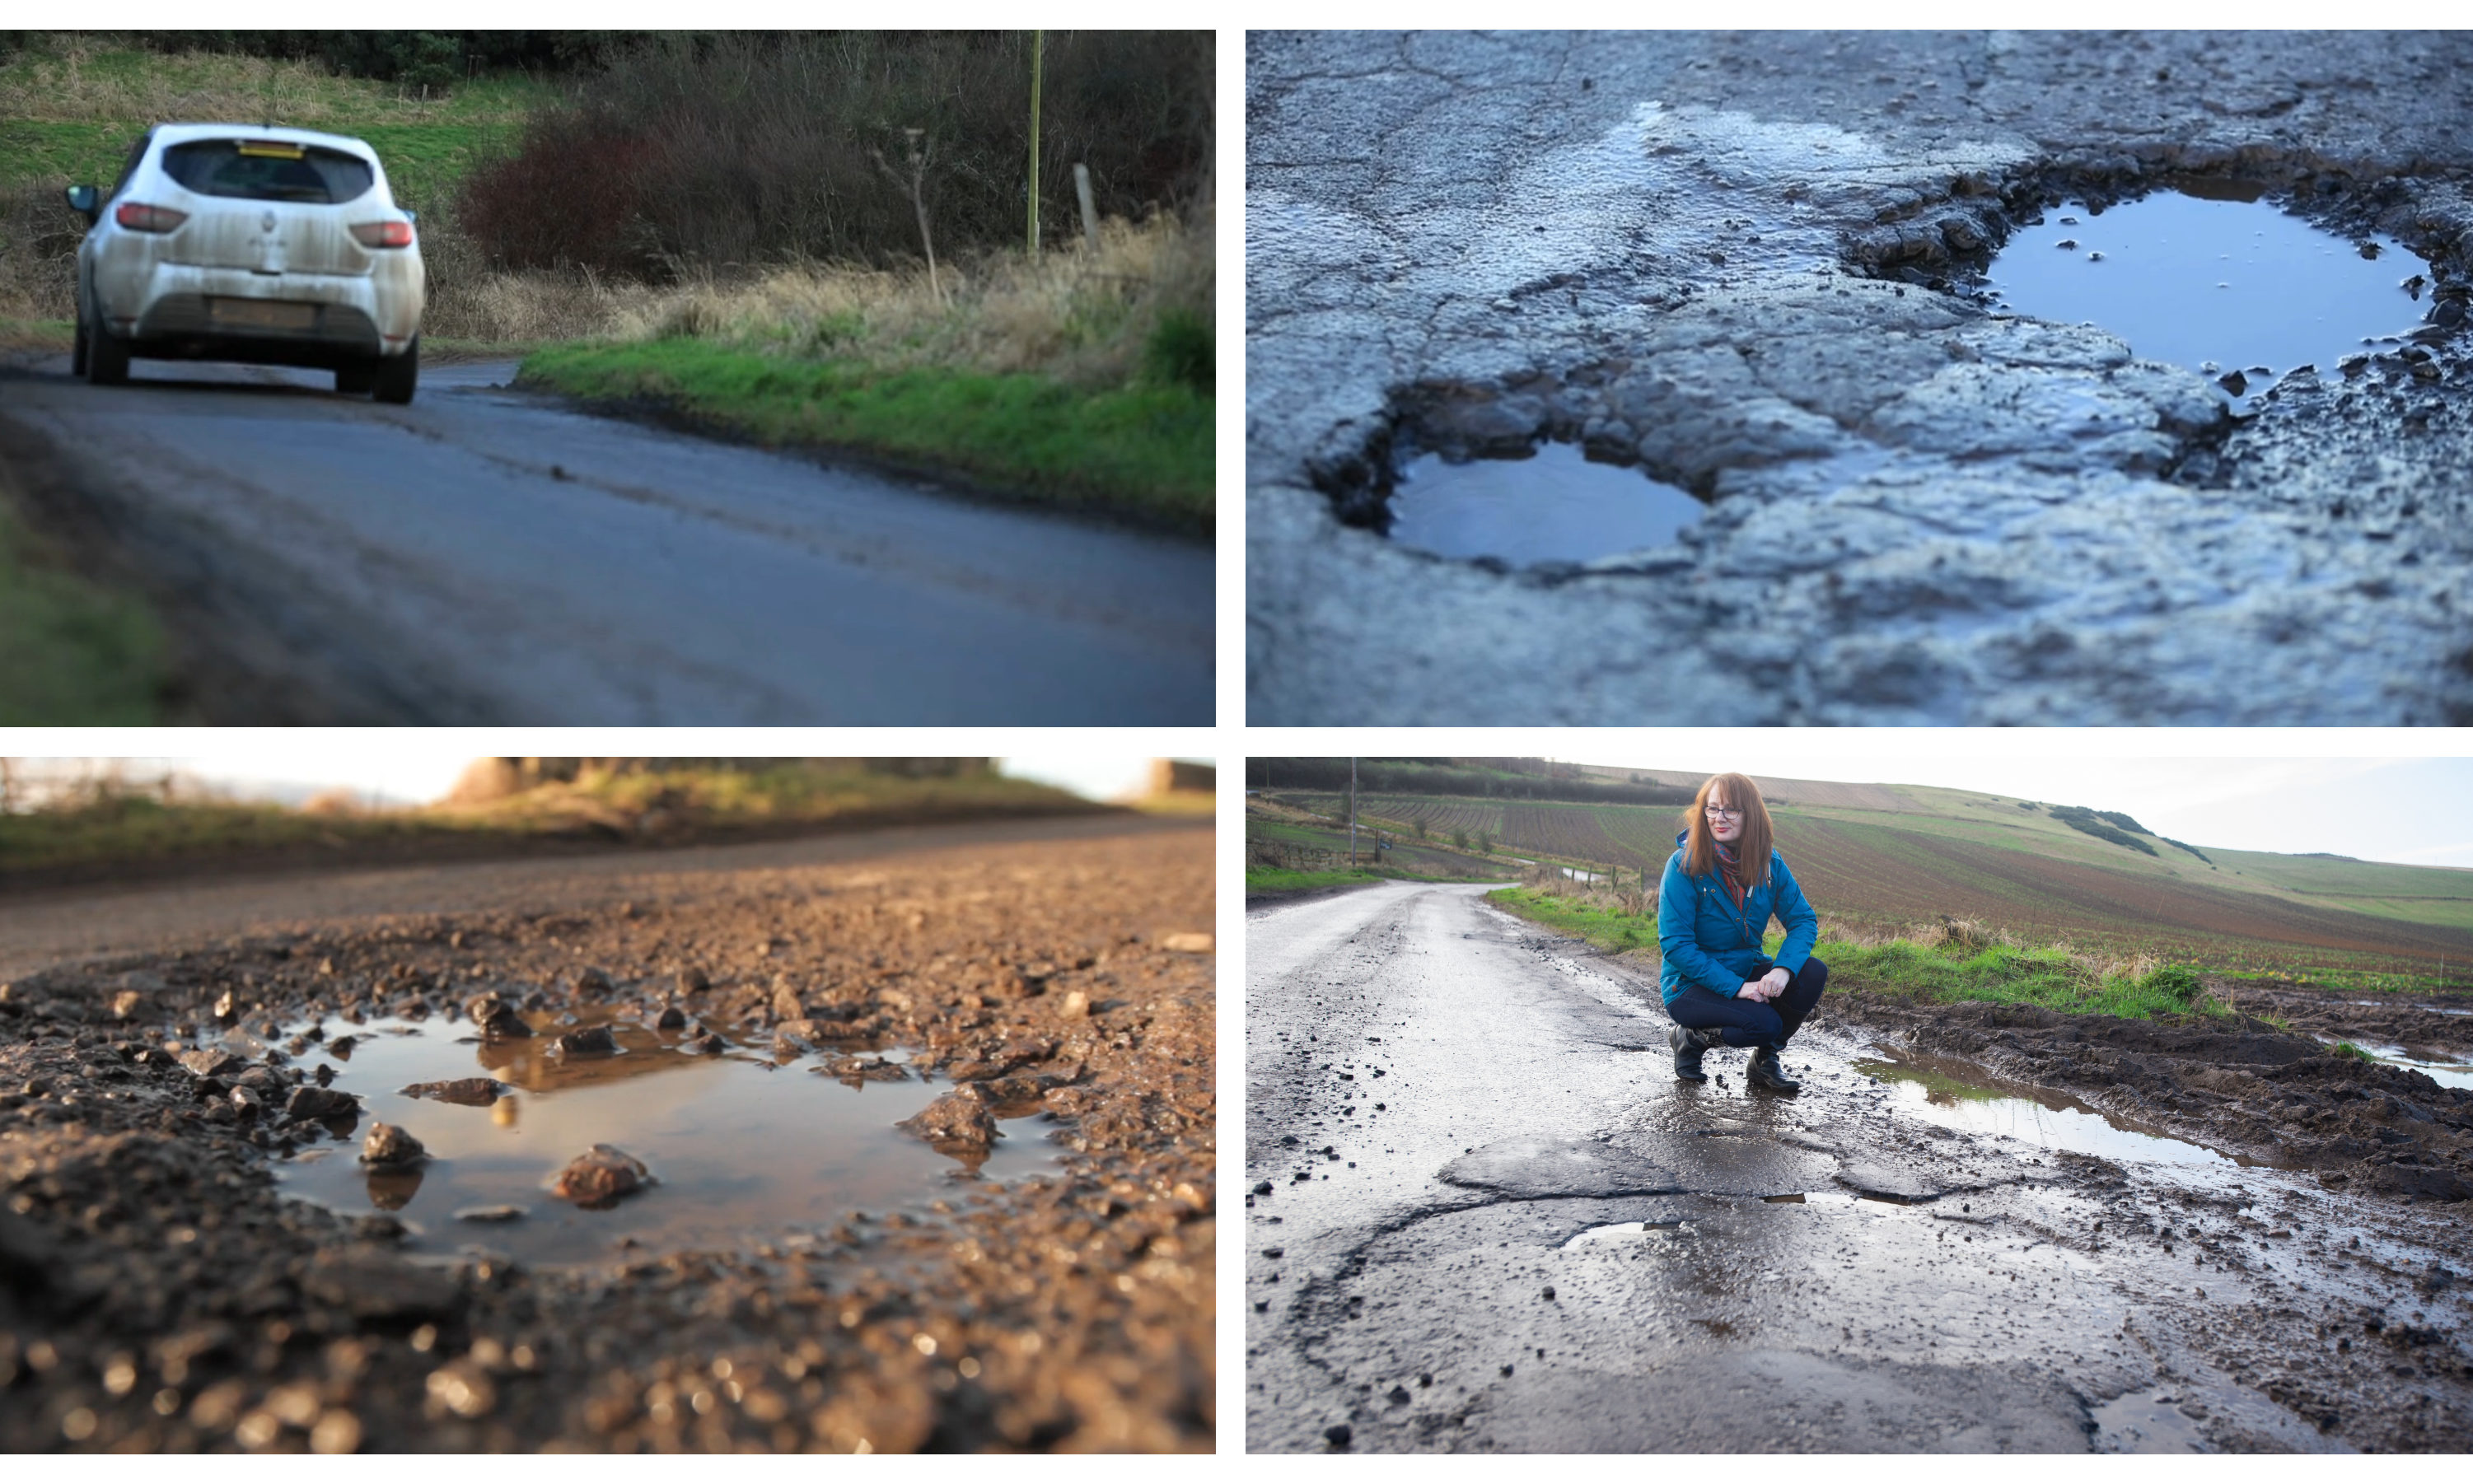 The potholed road between Kilmany and Cupar.